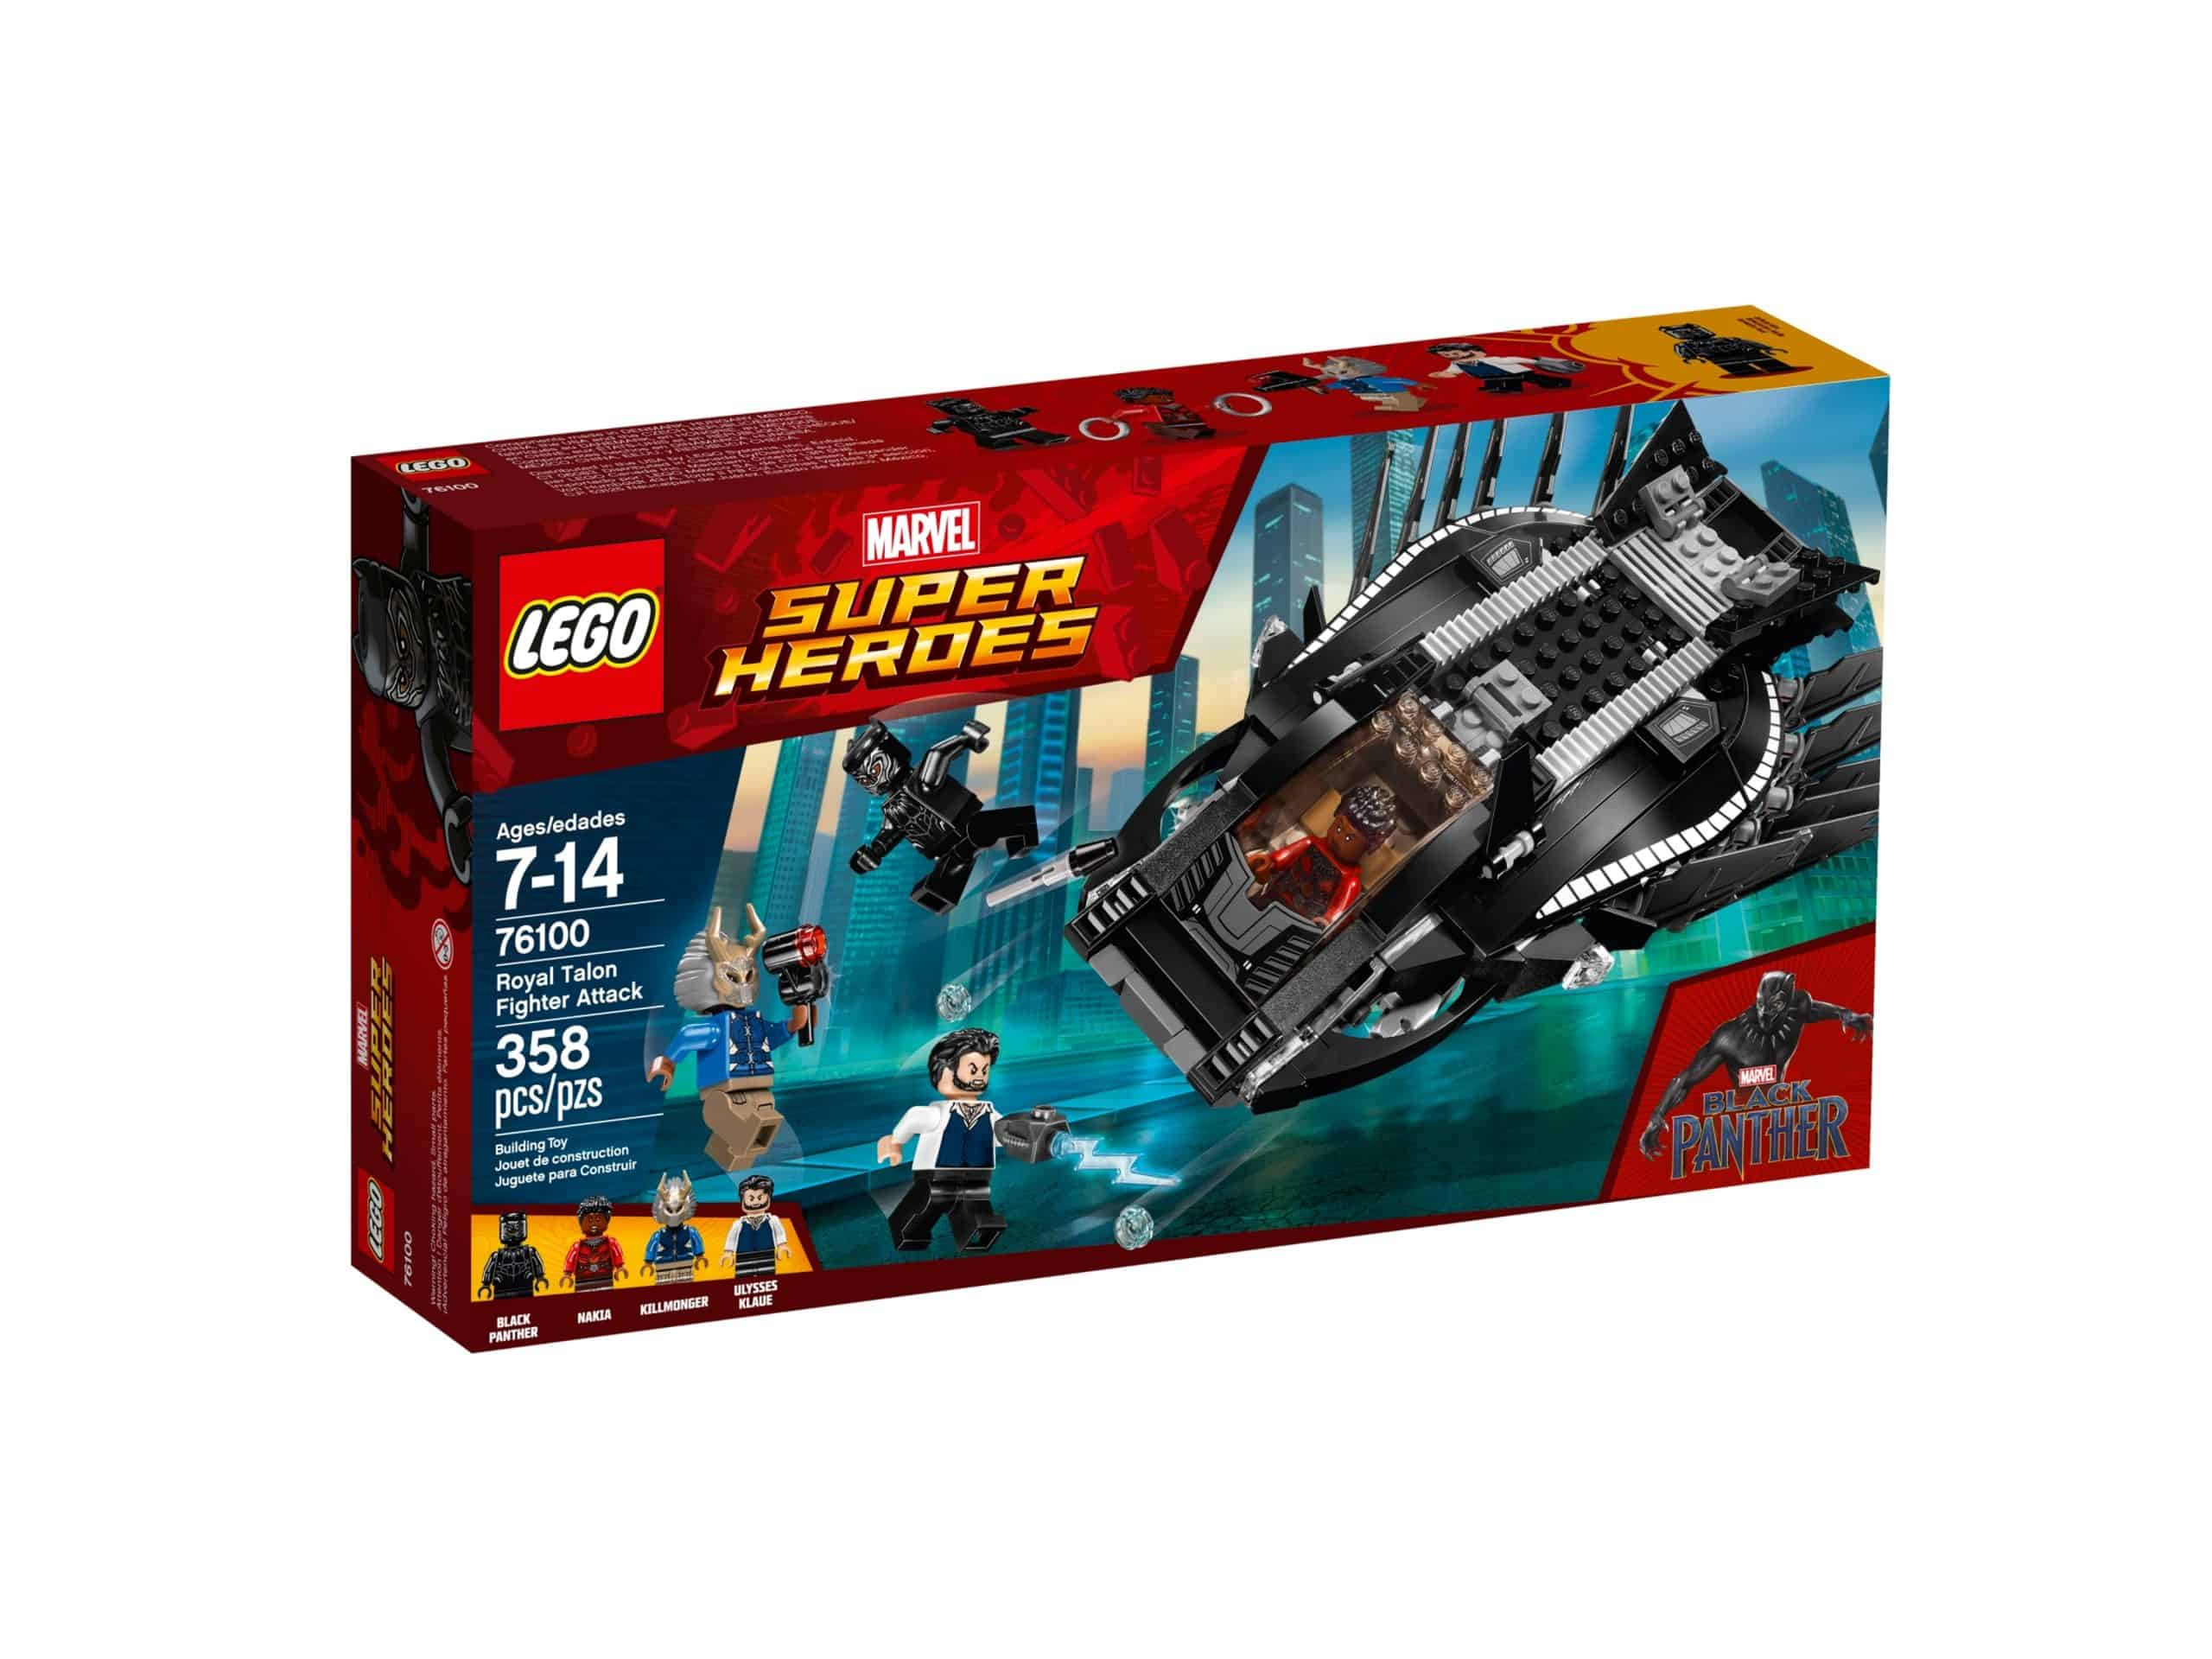 lego 76100 royal talon fighter angreb scaled